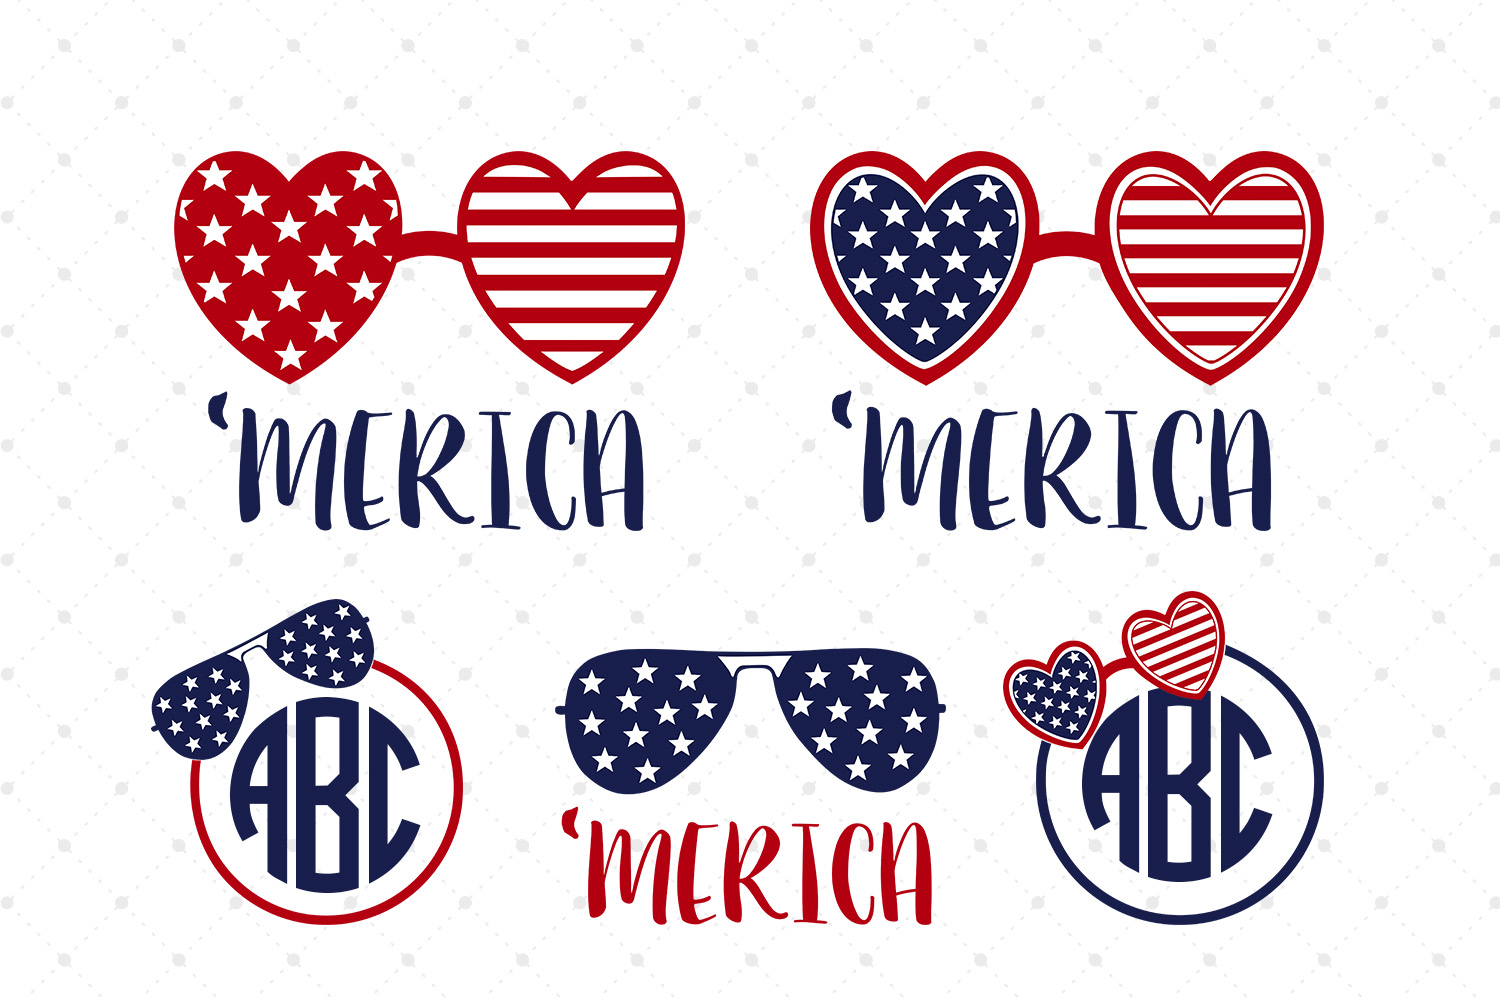 Download Free Svg Files For Cricut 4th Of July